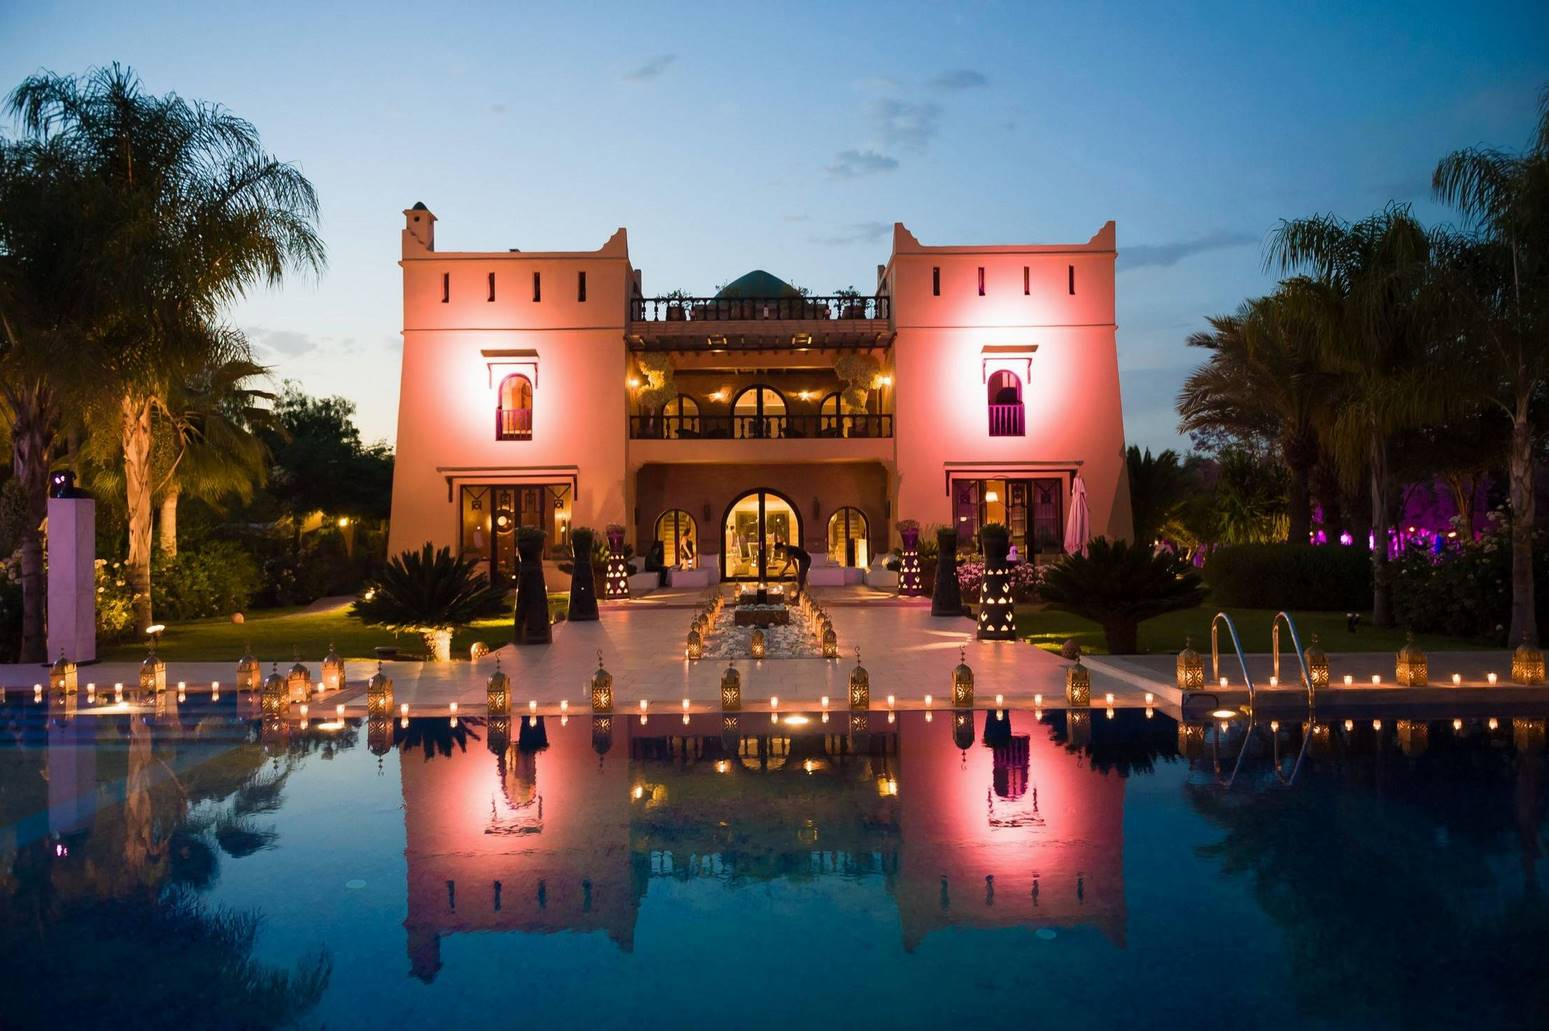 wedding venue marrakech - Villa Malika Silvana